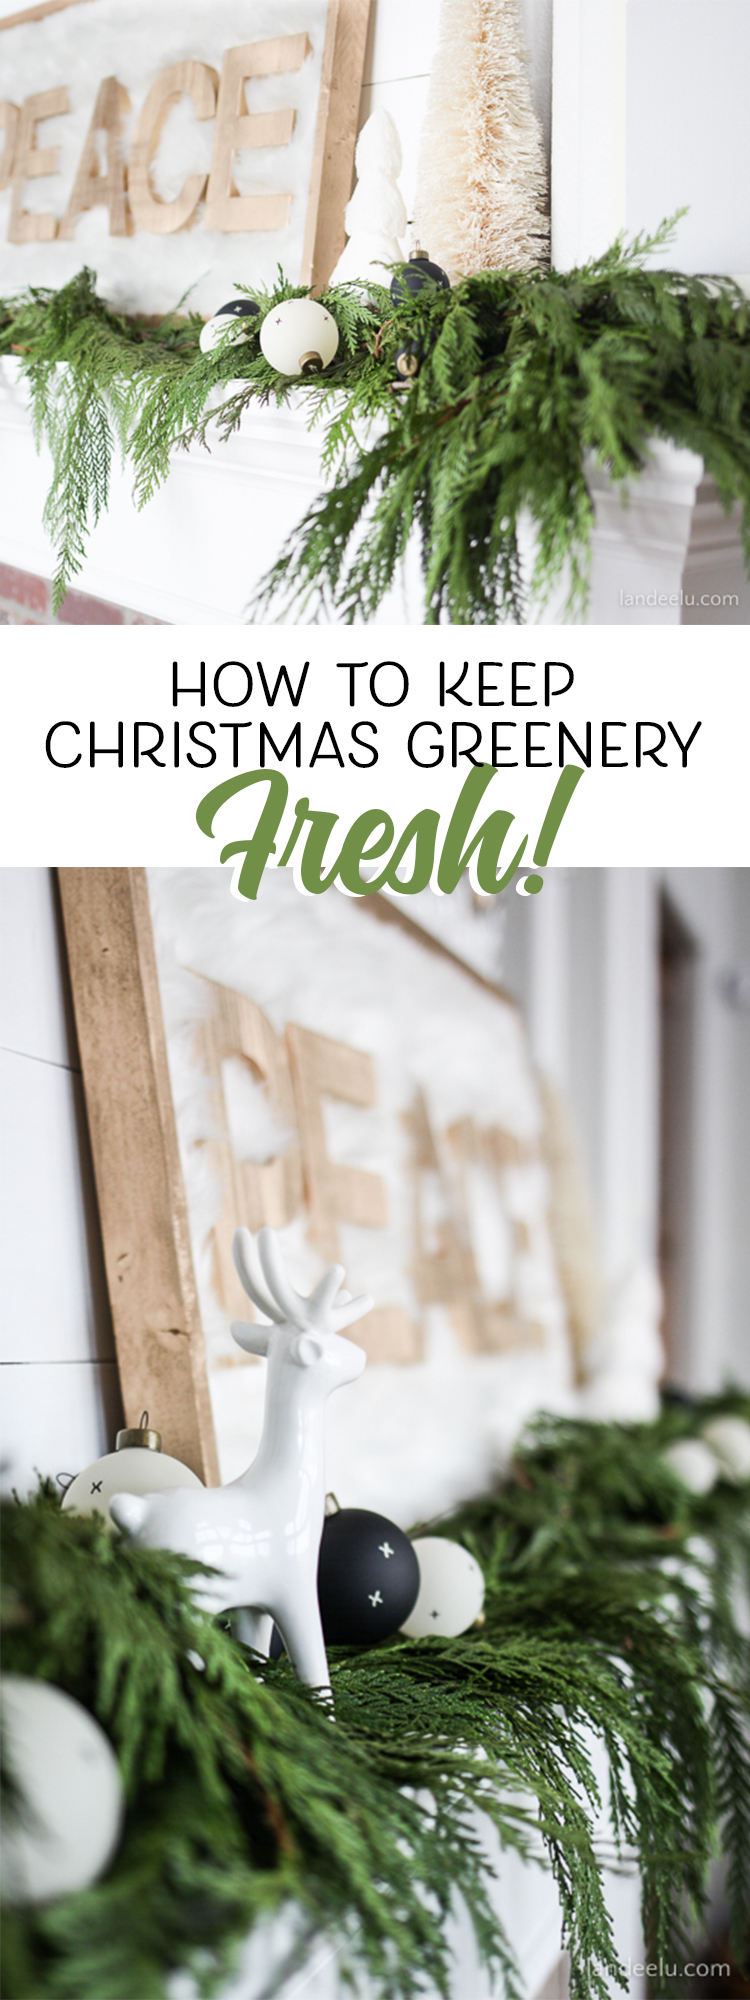 How To Keep Bad Luck Into Distance With These Two Plants: How To Keep Christmas Greenery Fresh!